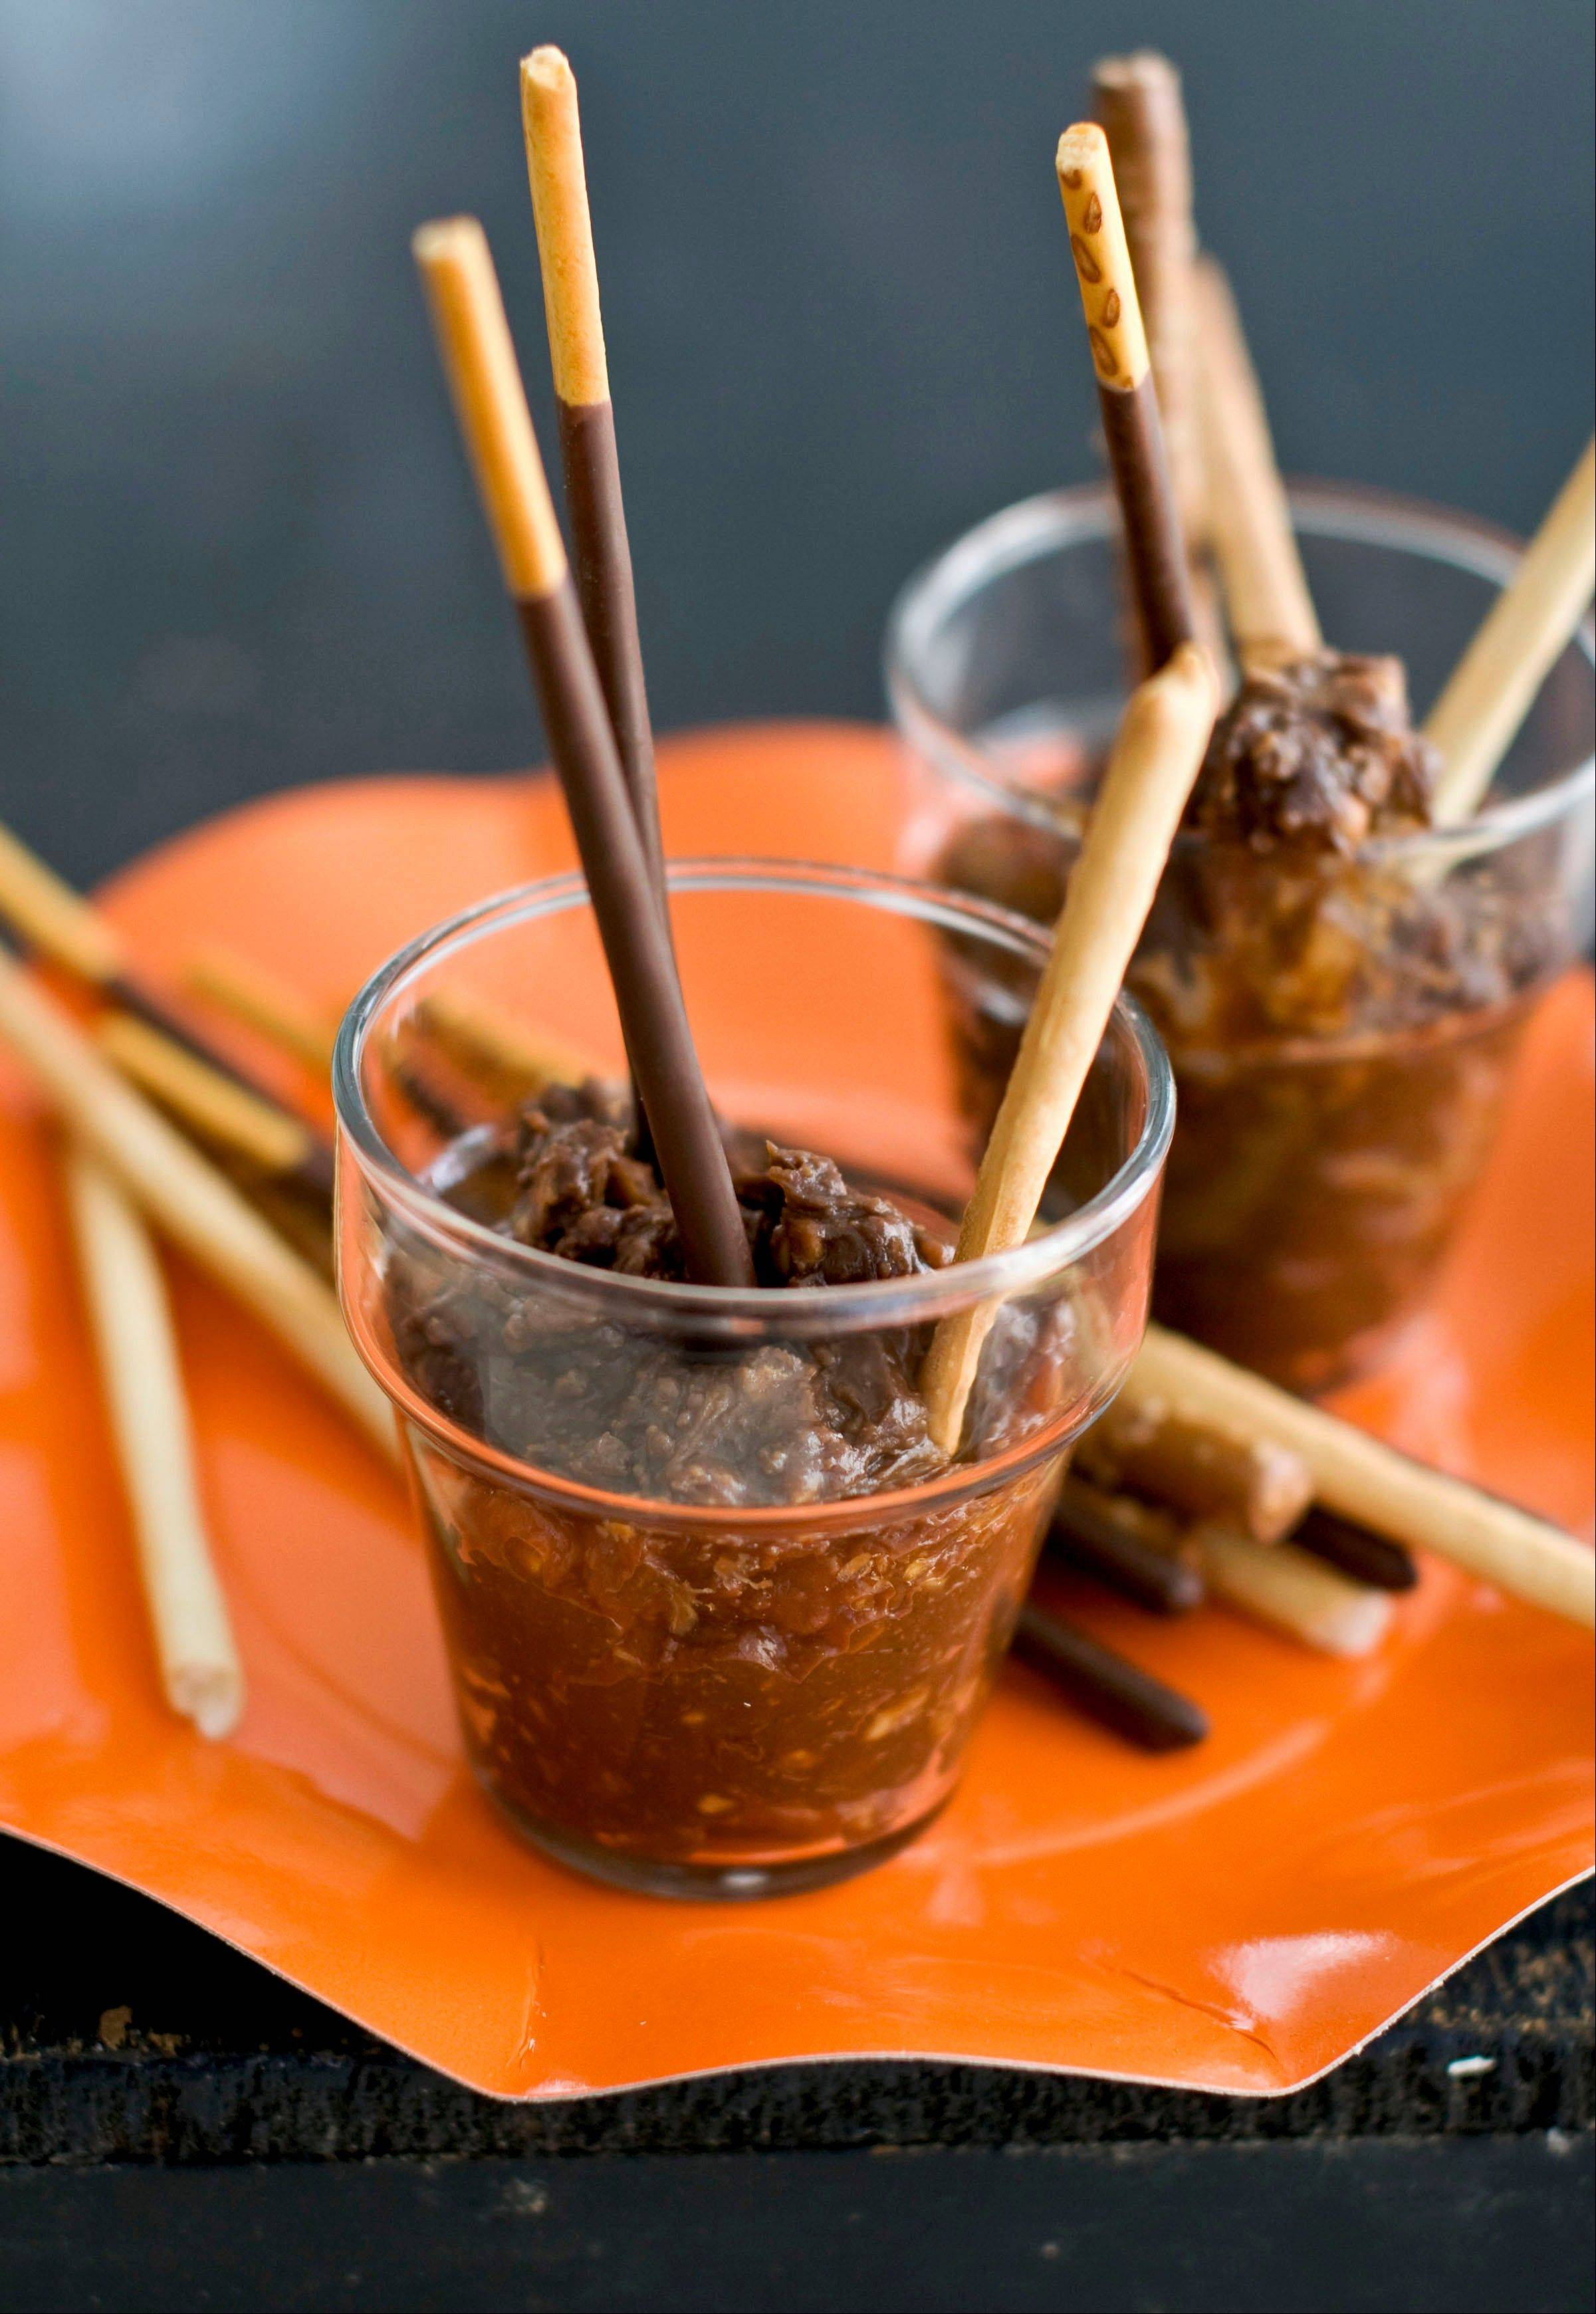 Let the goblins at your Halloween party get down and dirty with gooey, yummy Pots of Mud.